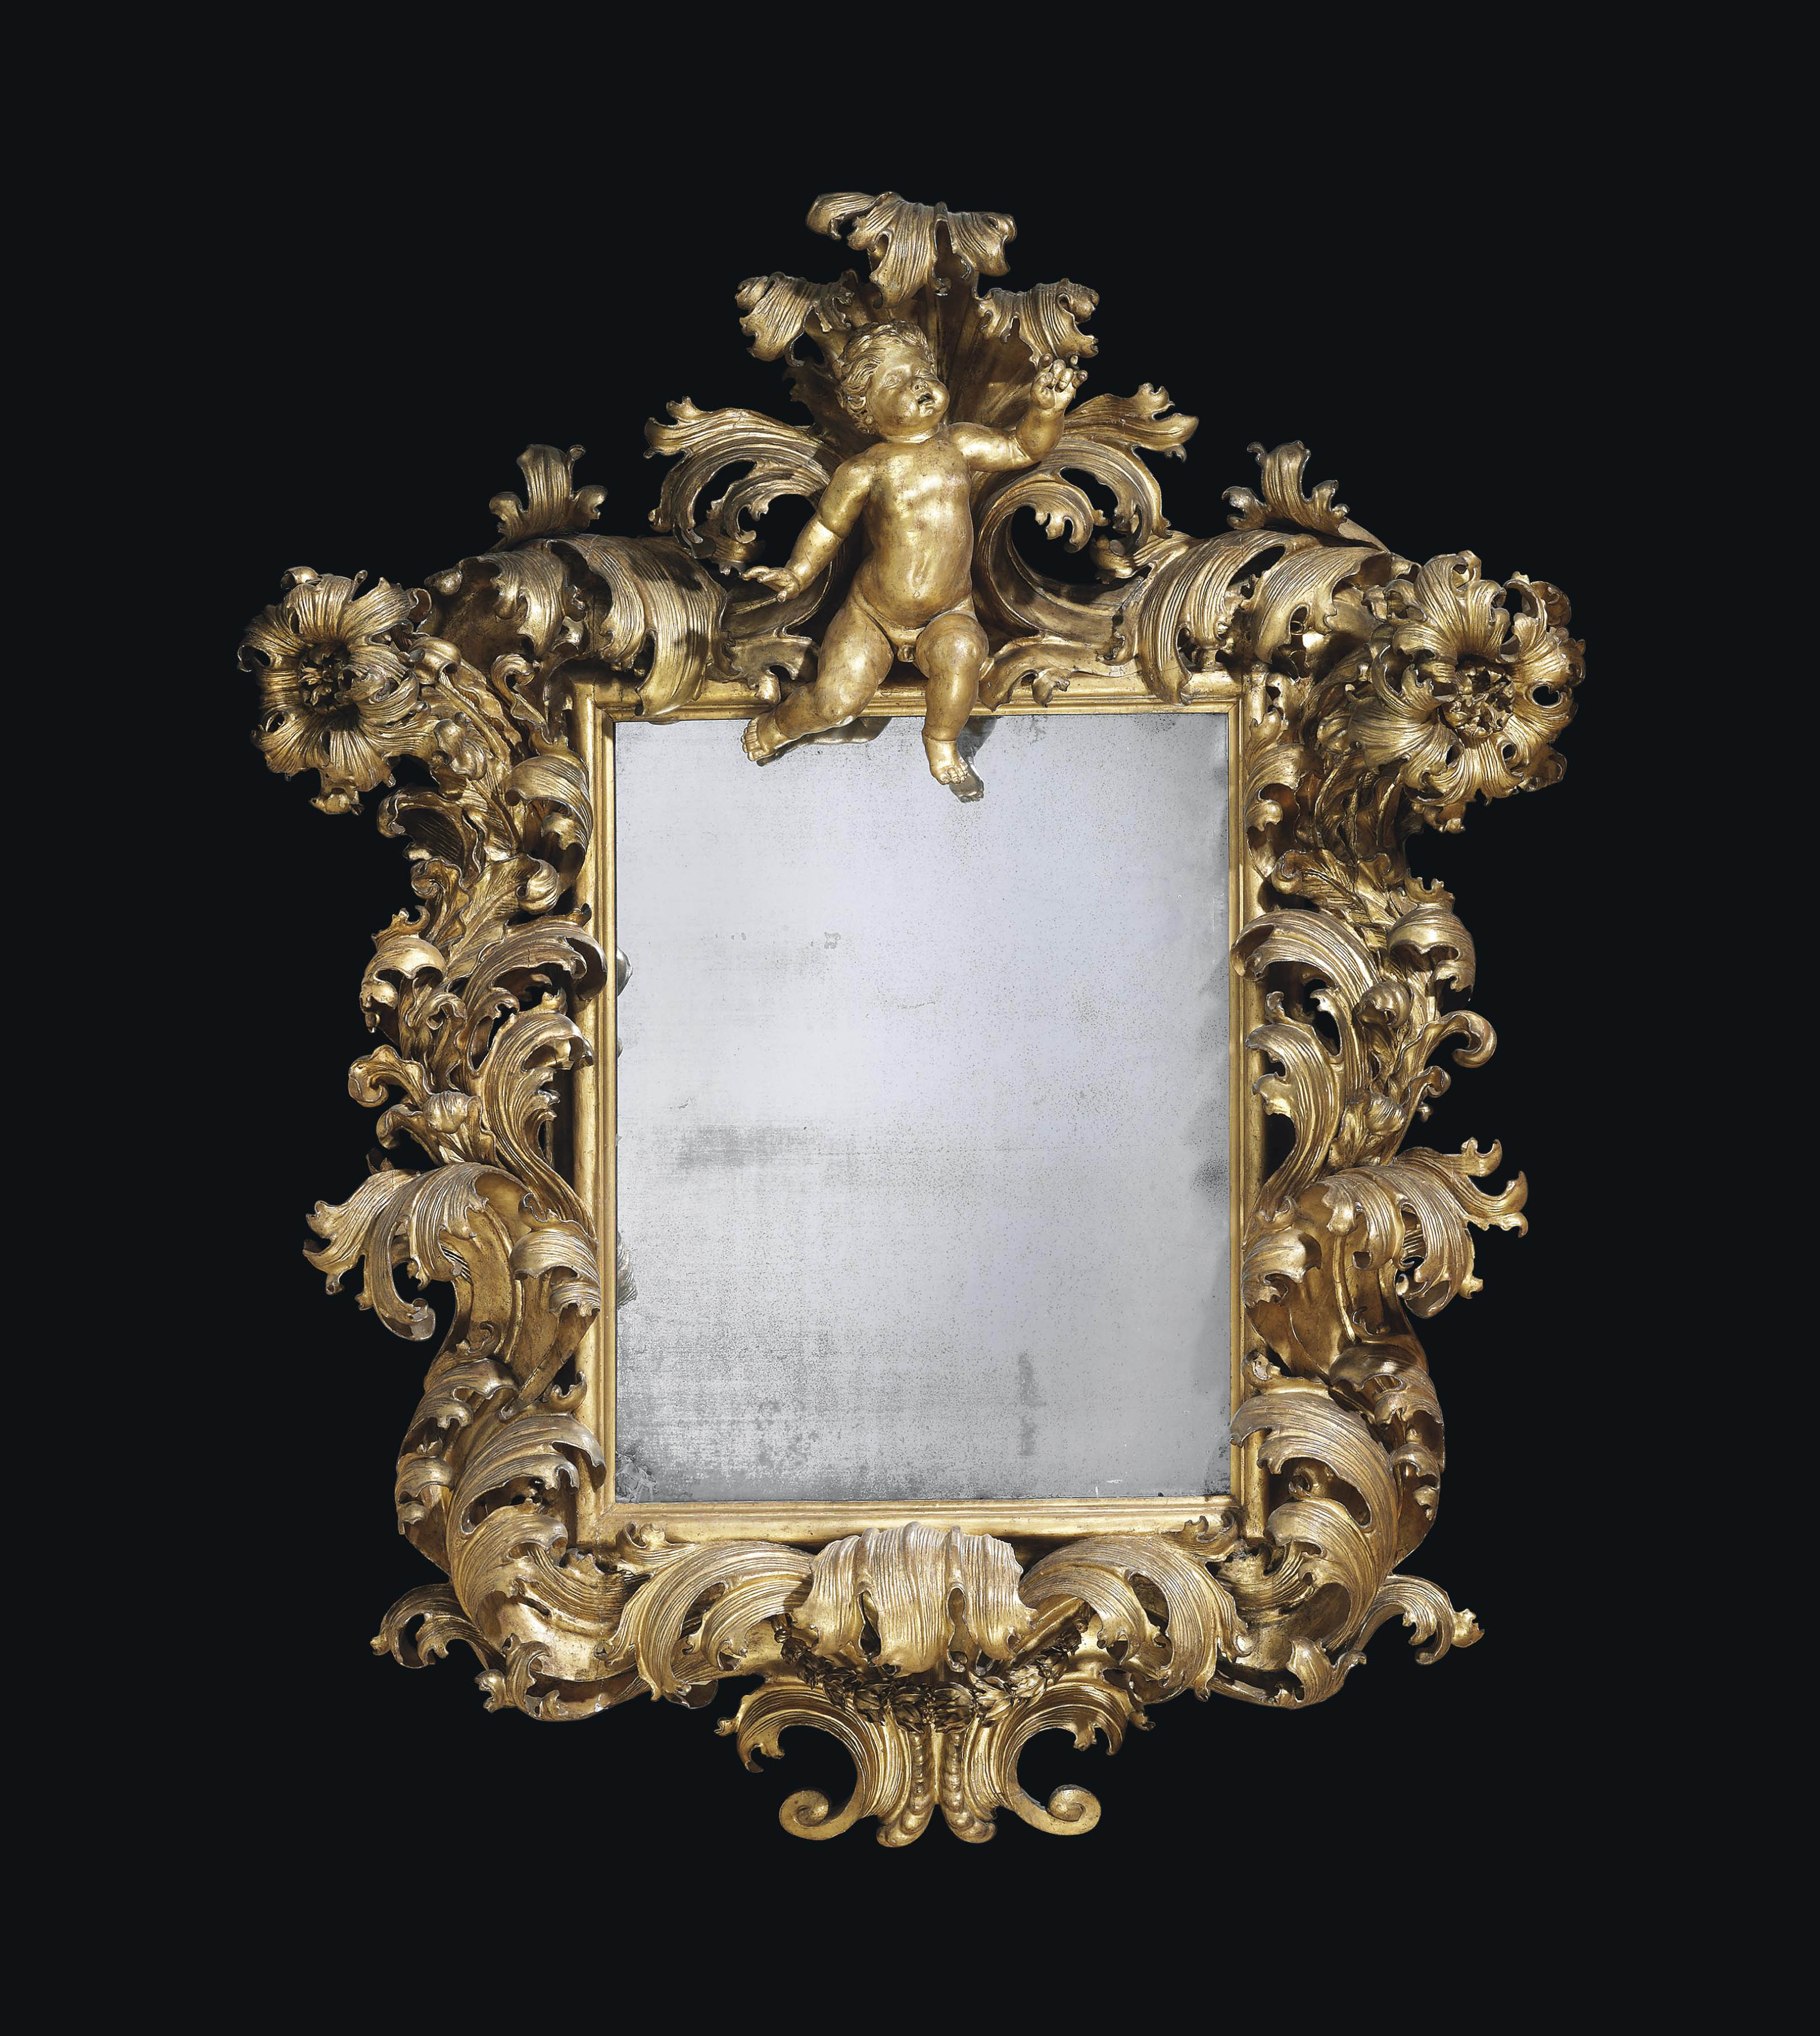 A NORTH ITALIAN GILTWOOD MIRROR